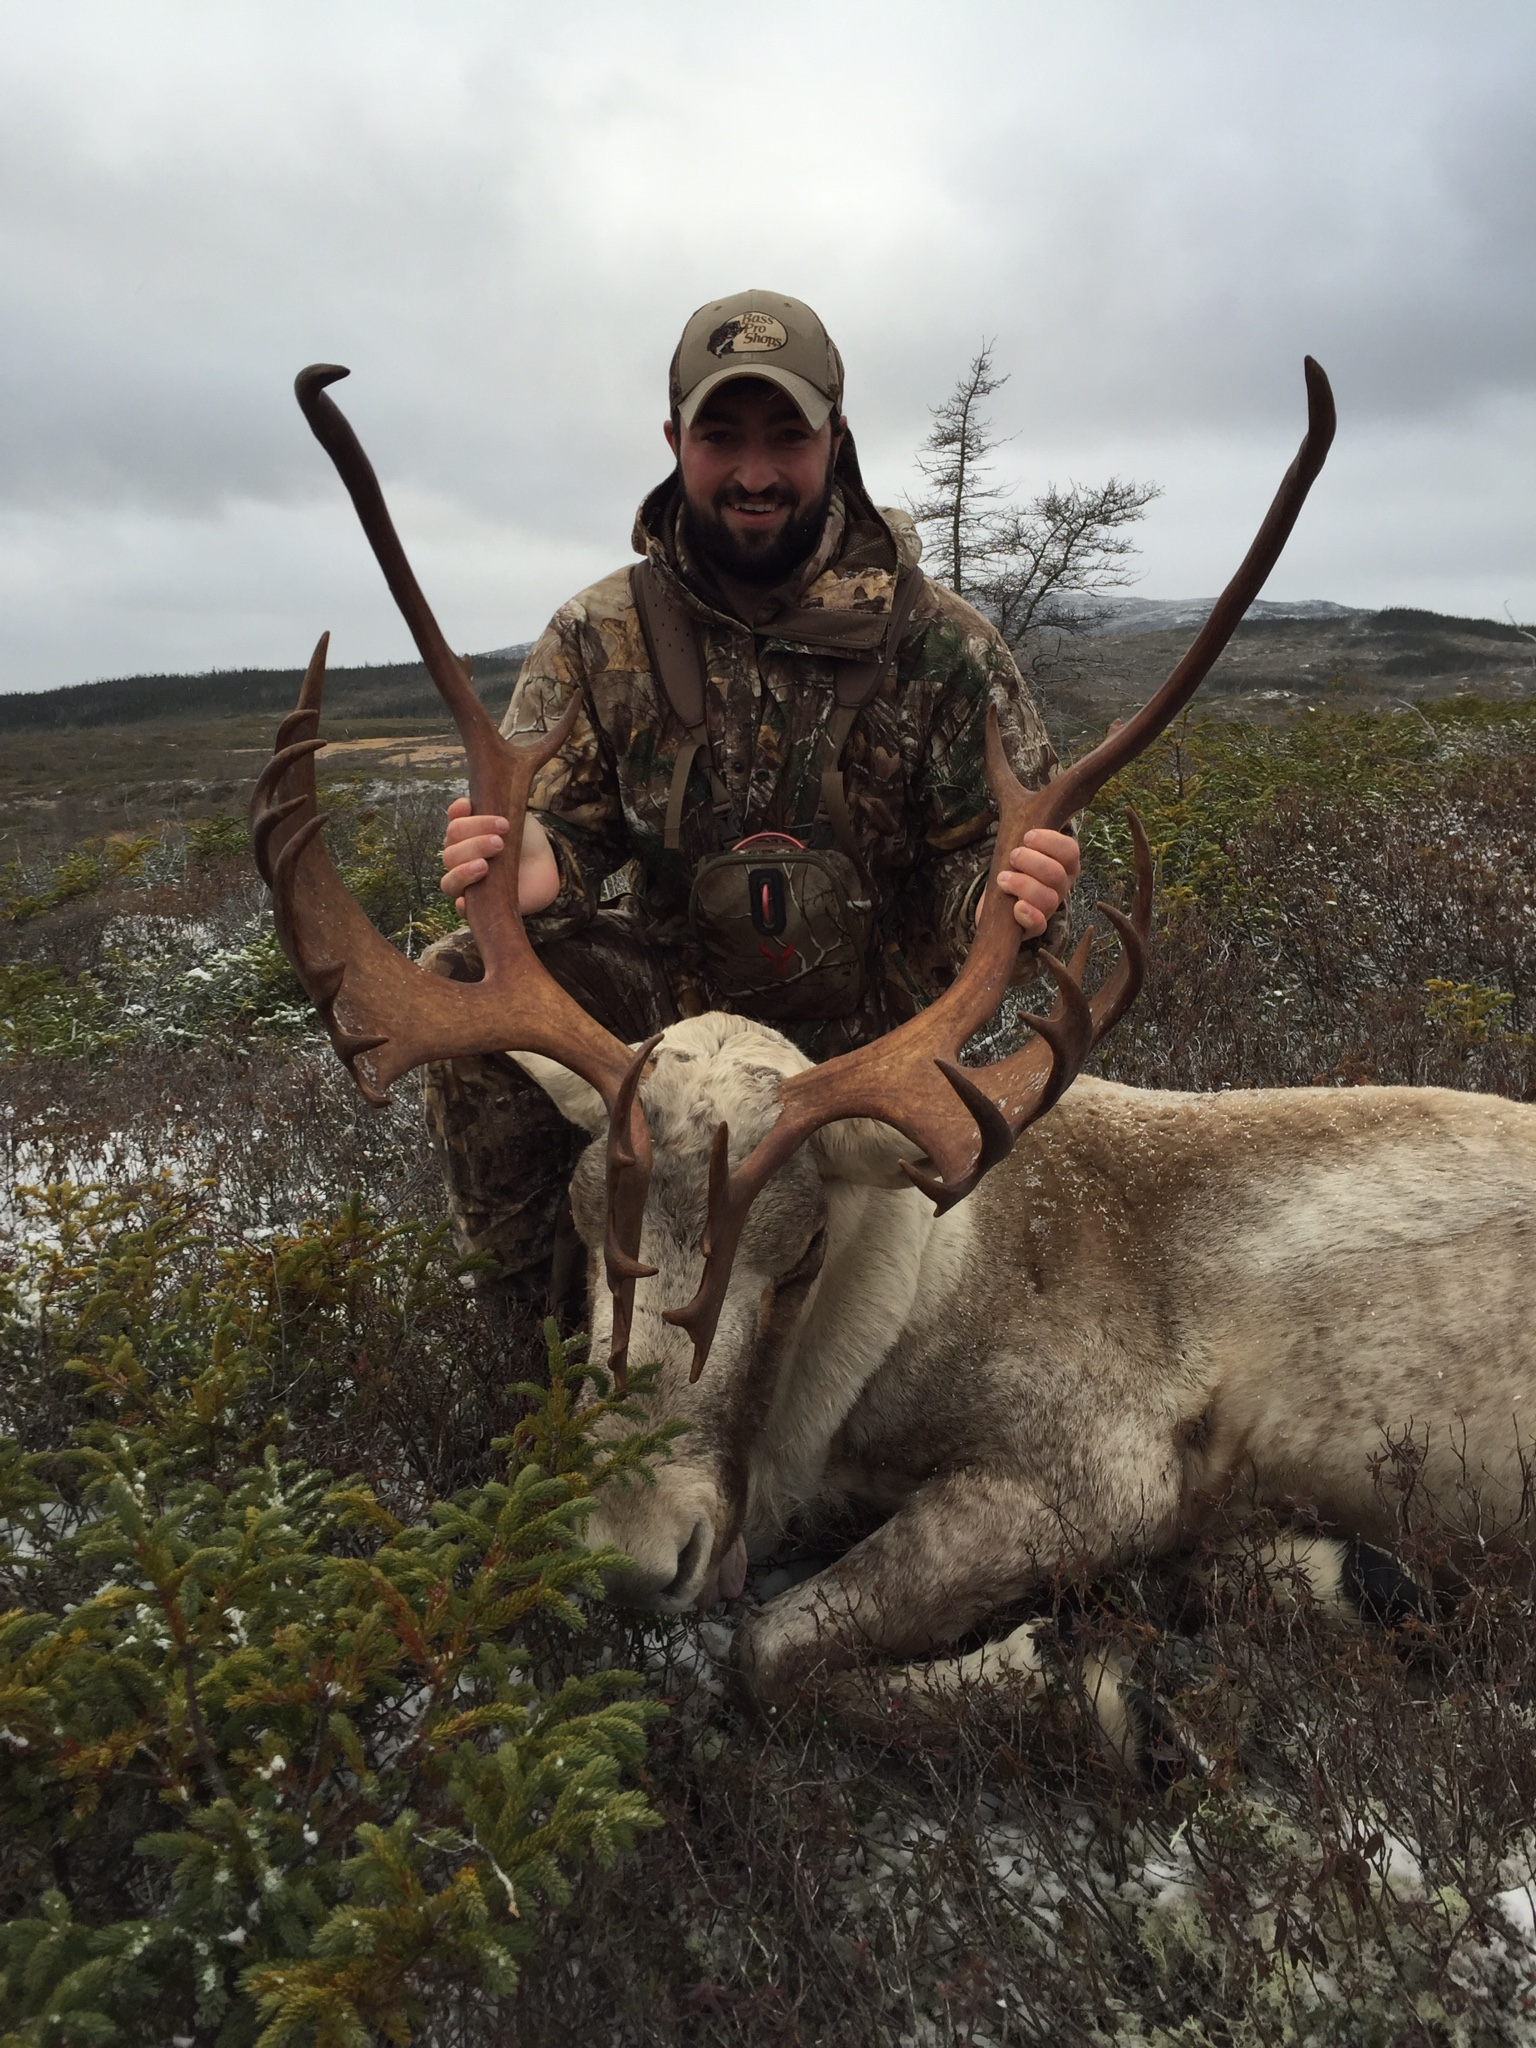 BOOK YOUR DREAM HUNT TODAY GUIDED CARIBOU HUNTS